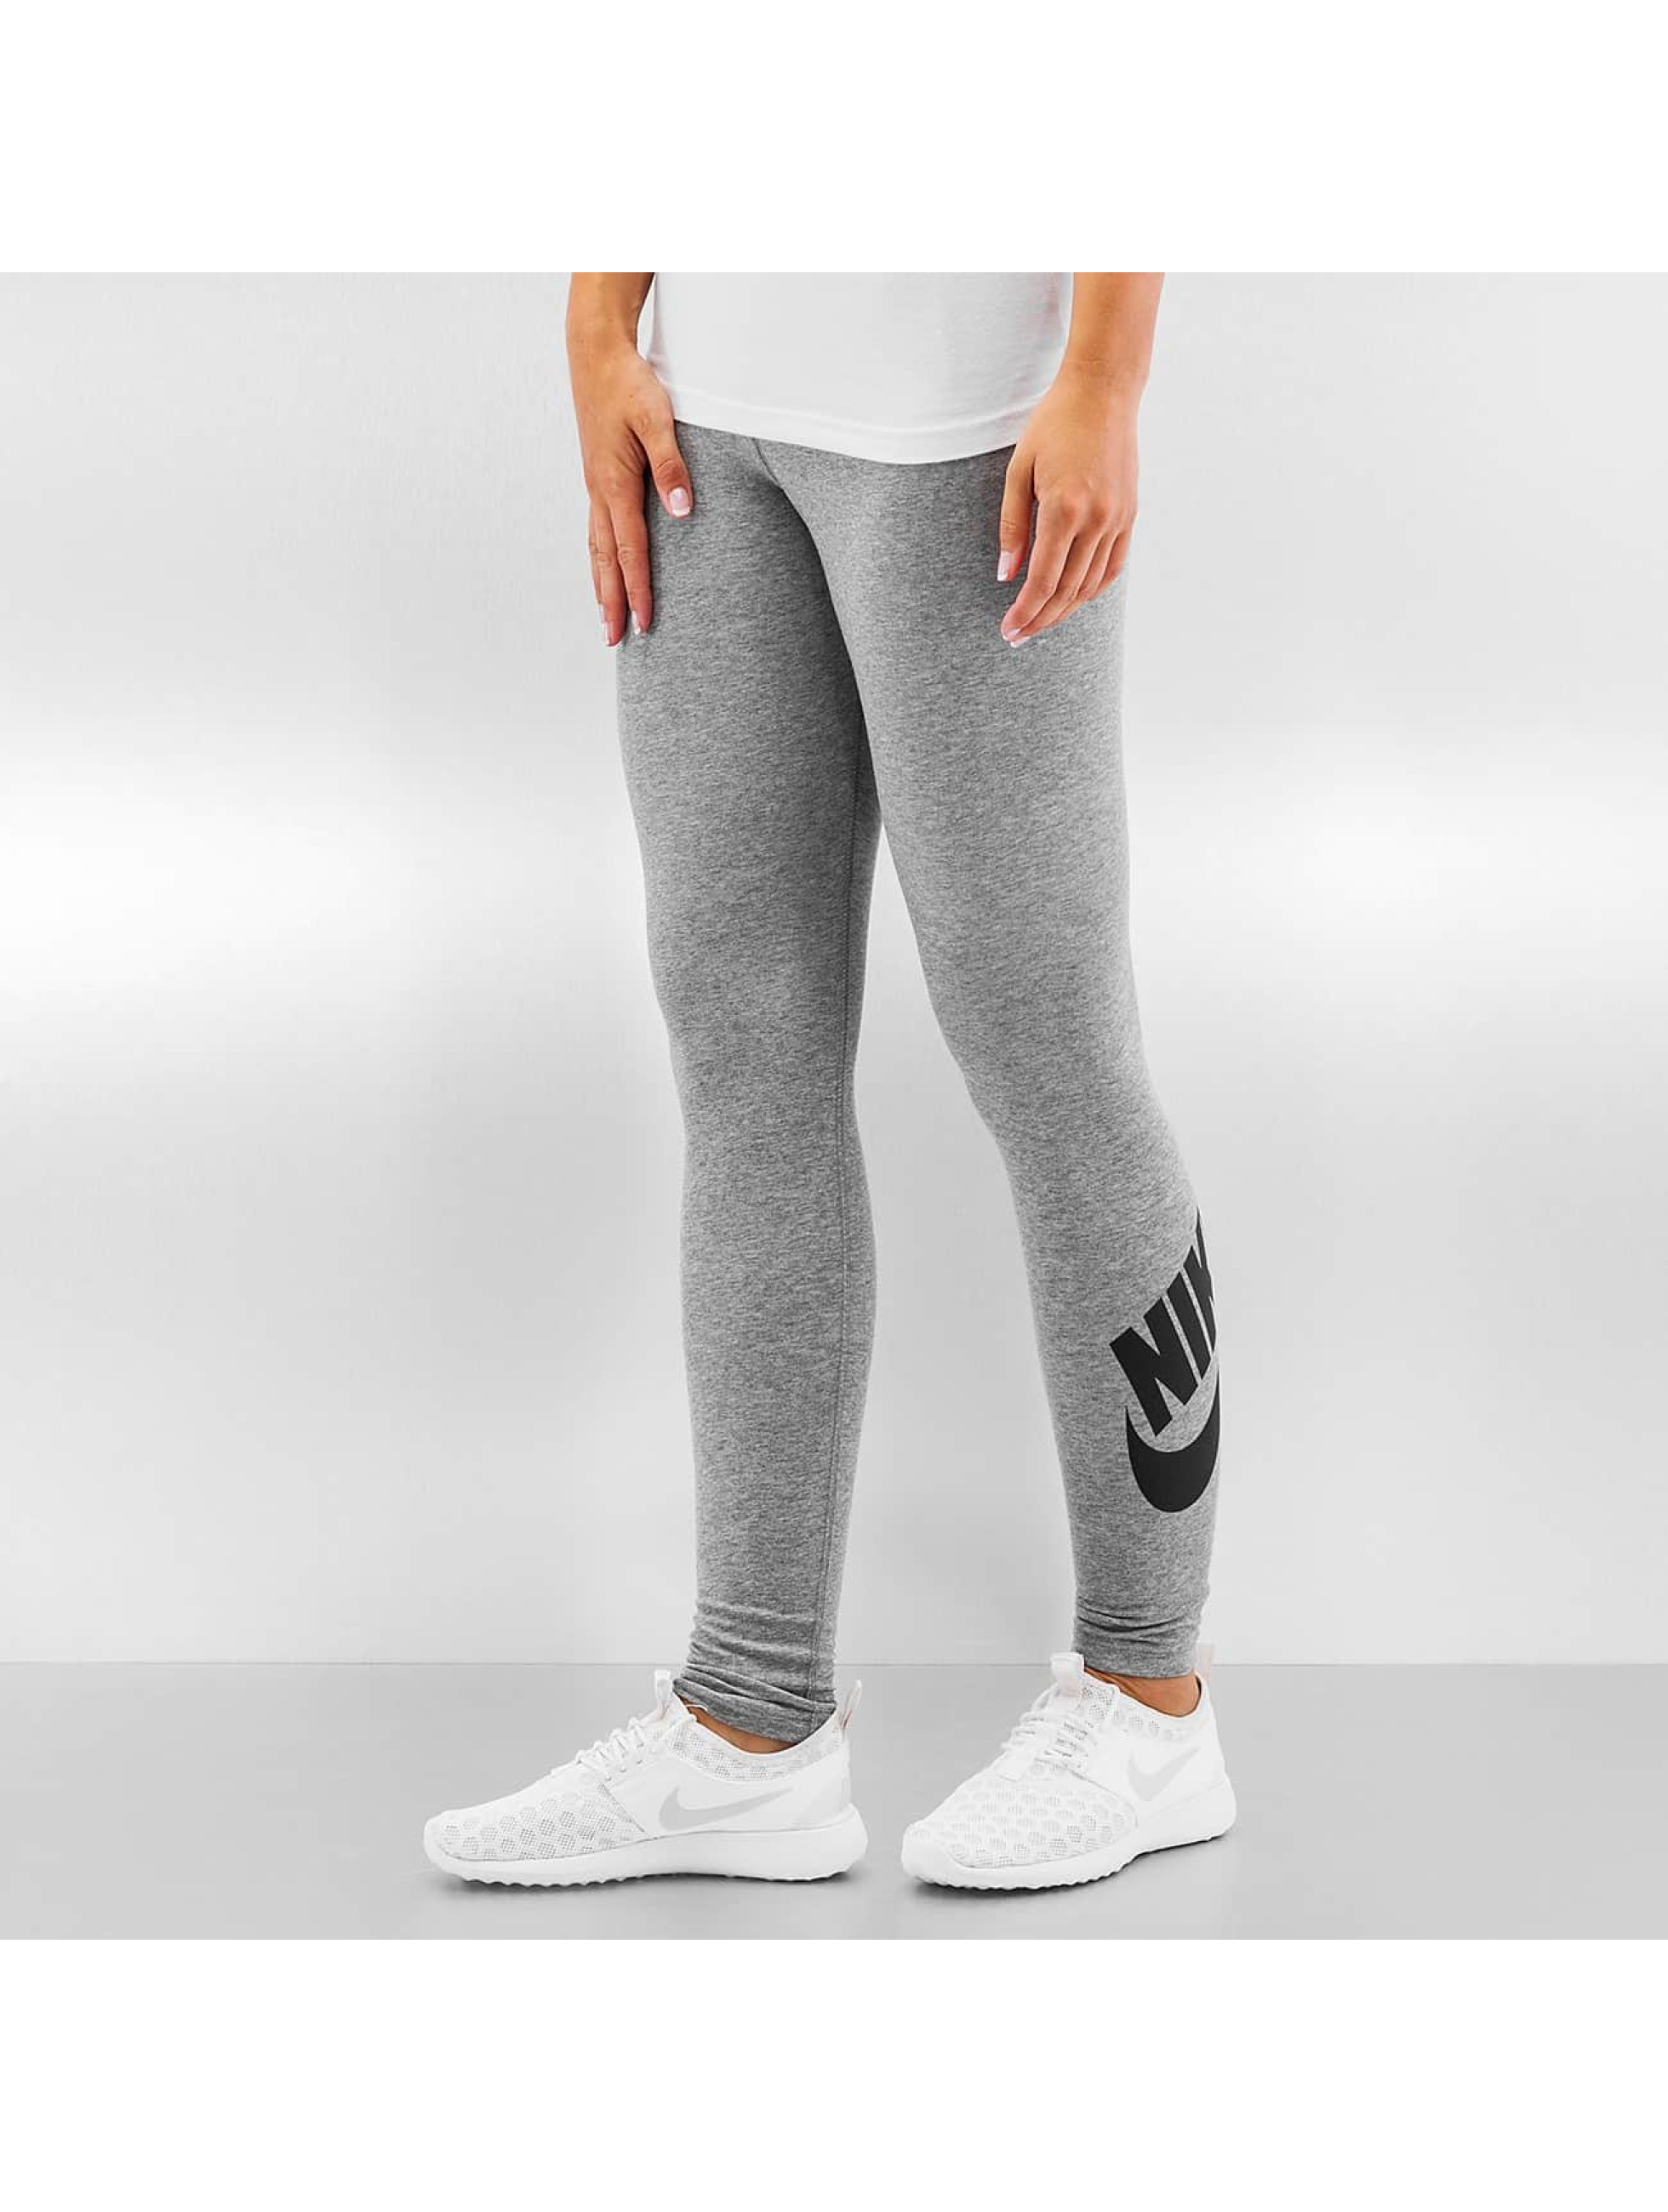 nike leg a see logo gris femme legging nike acheter pas cher pantalon 257290. Black Bedroom Furniture Sets. Home Design Ideas